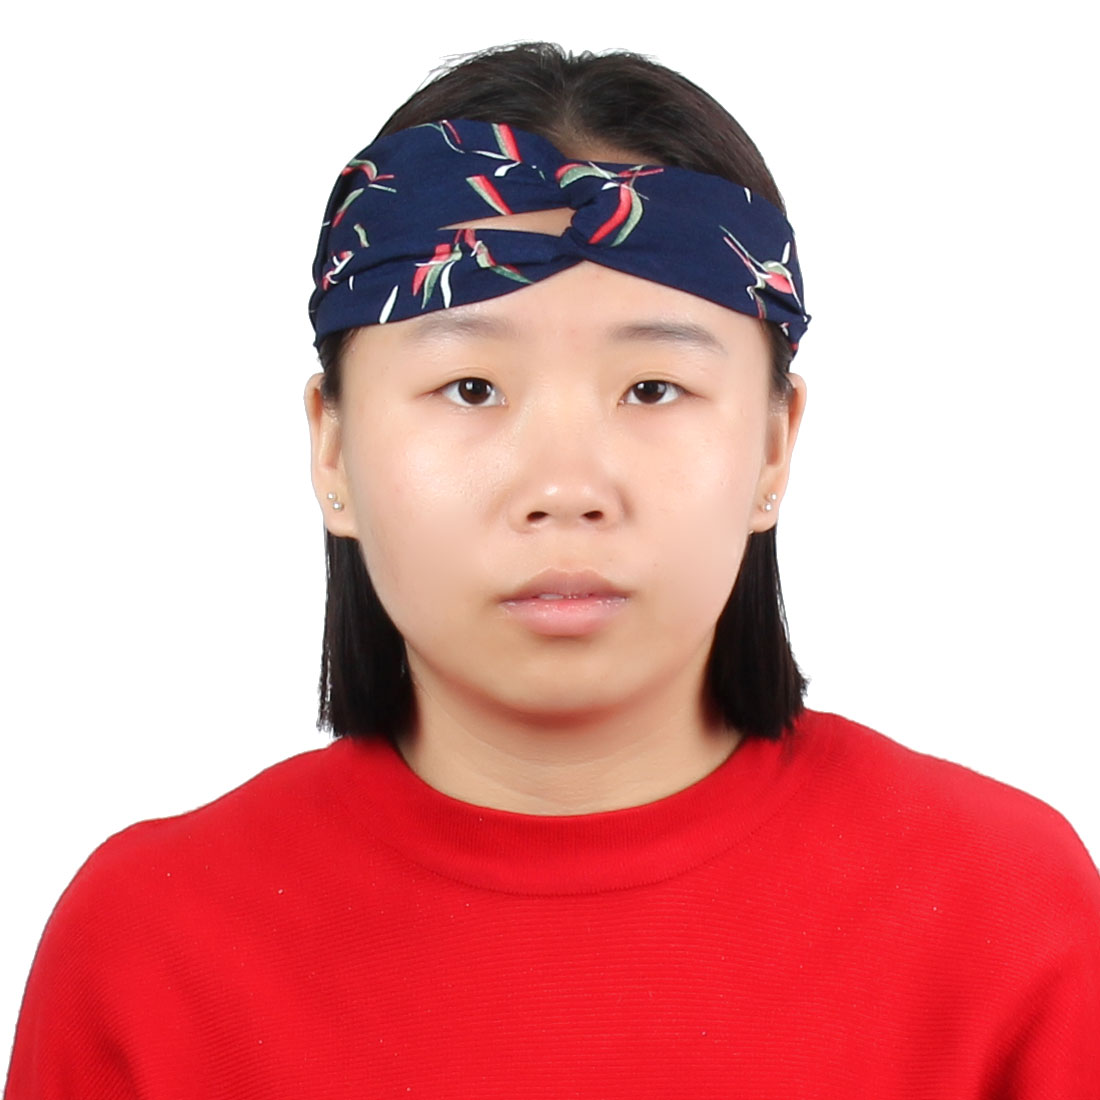 MULTI COLOUR STRIPES KNOTTED HEADWRAP HAIR WRAP SELF TIE HEADBAND LADIES NEW